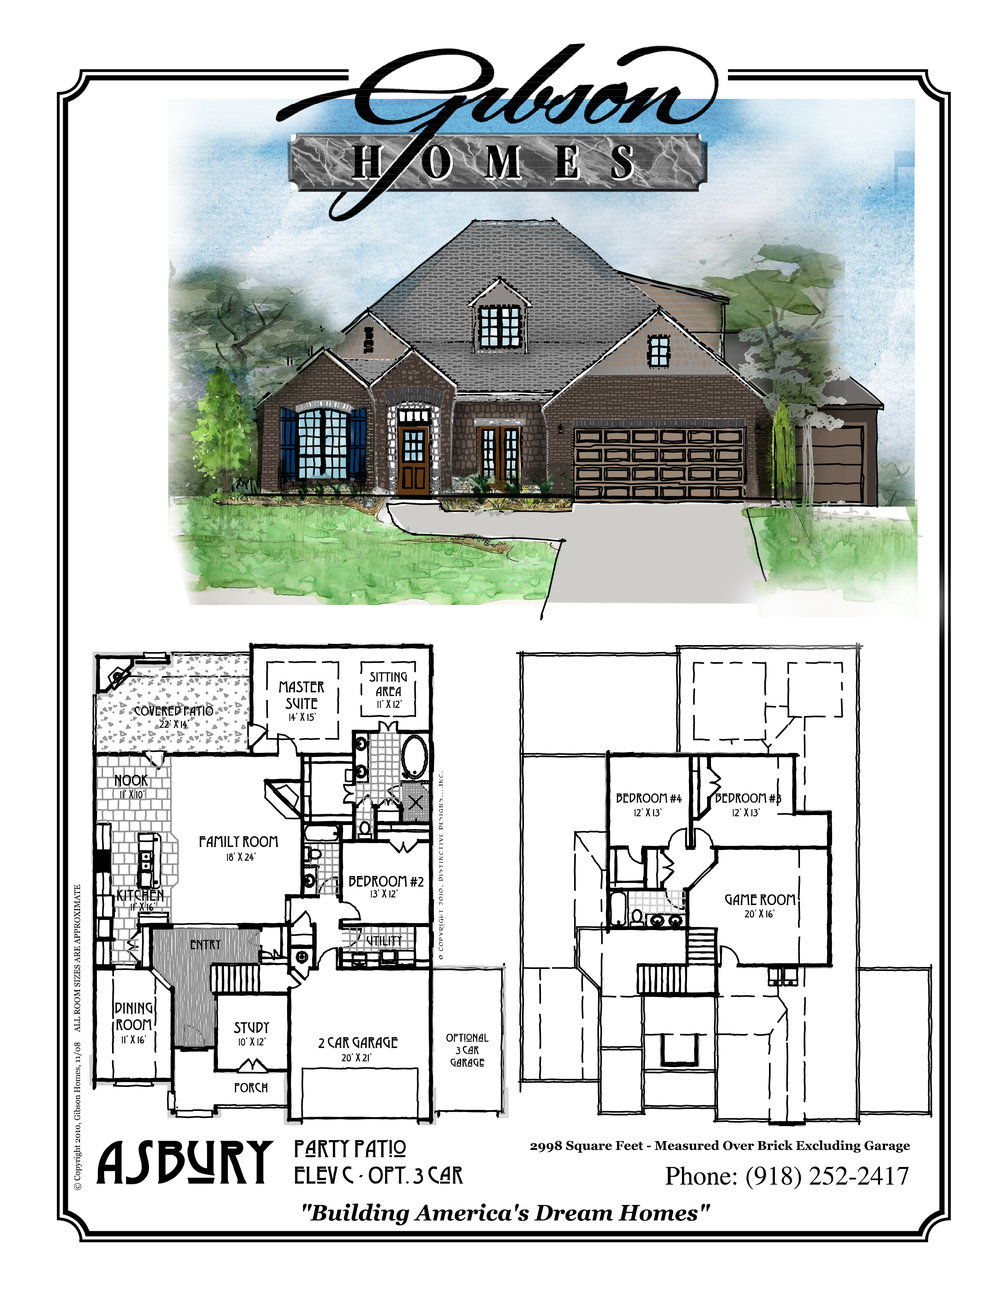 ASBURY - 2 Story2998 Sq. Feet2 bedrooms downstairs2 bedrooms plus a bonus room upstairs2 baths downstairs1 bath upstairsFormal diningFireplace on large covered back porch (optional)Master suite comes with a large sitting areaStudy down stairs2 car garageBase Price $284,000